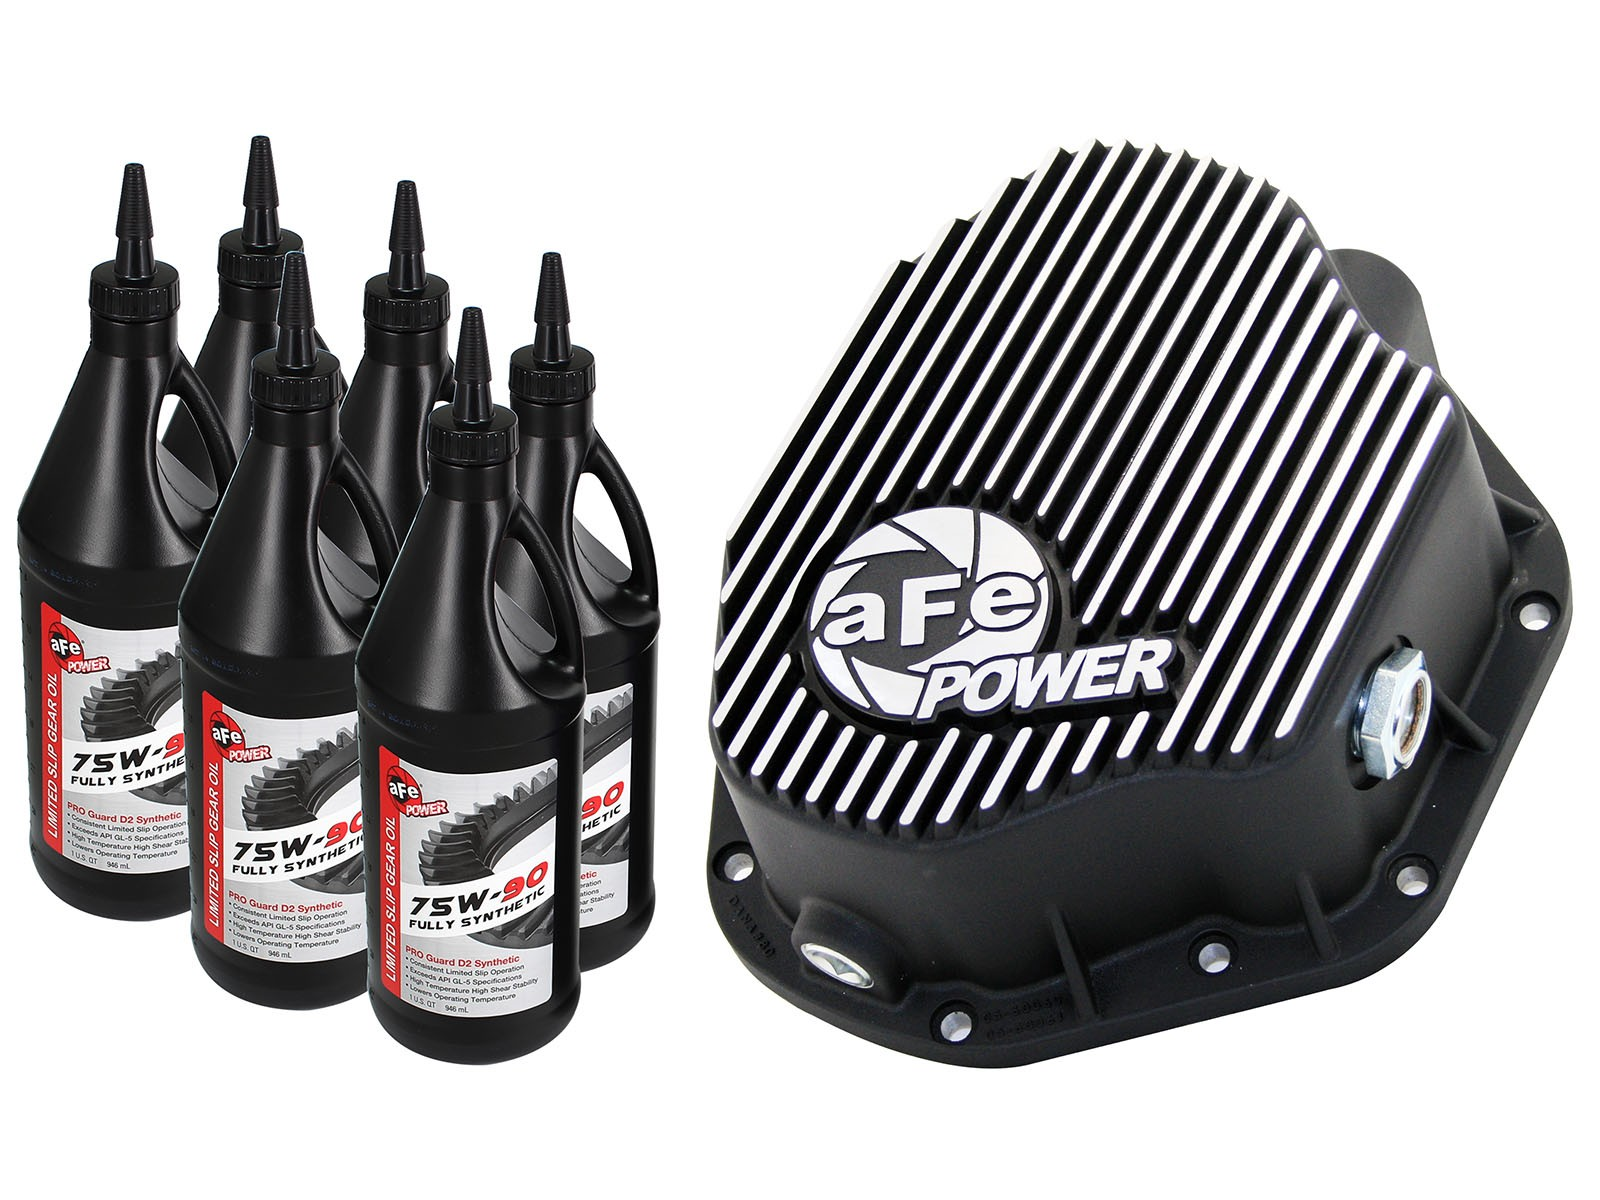 aFe POWER 46-70032-WL Rear Differential Cover, Machined Fins; Pro Series w/ Gear Oil